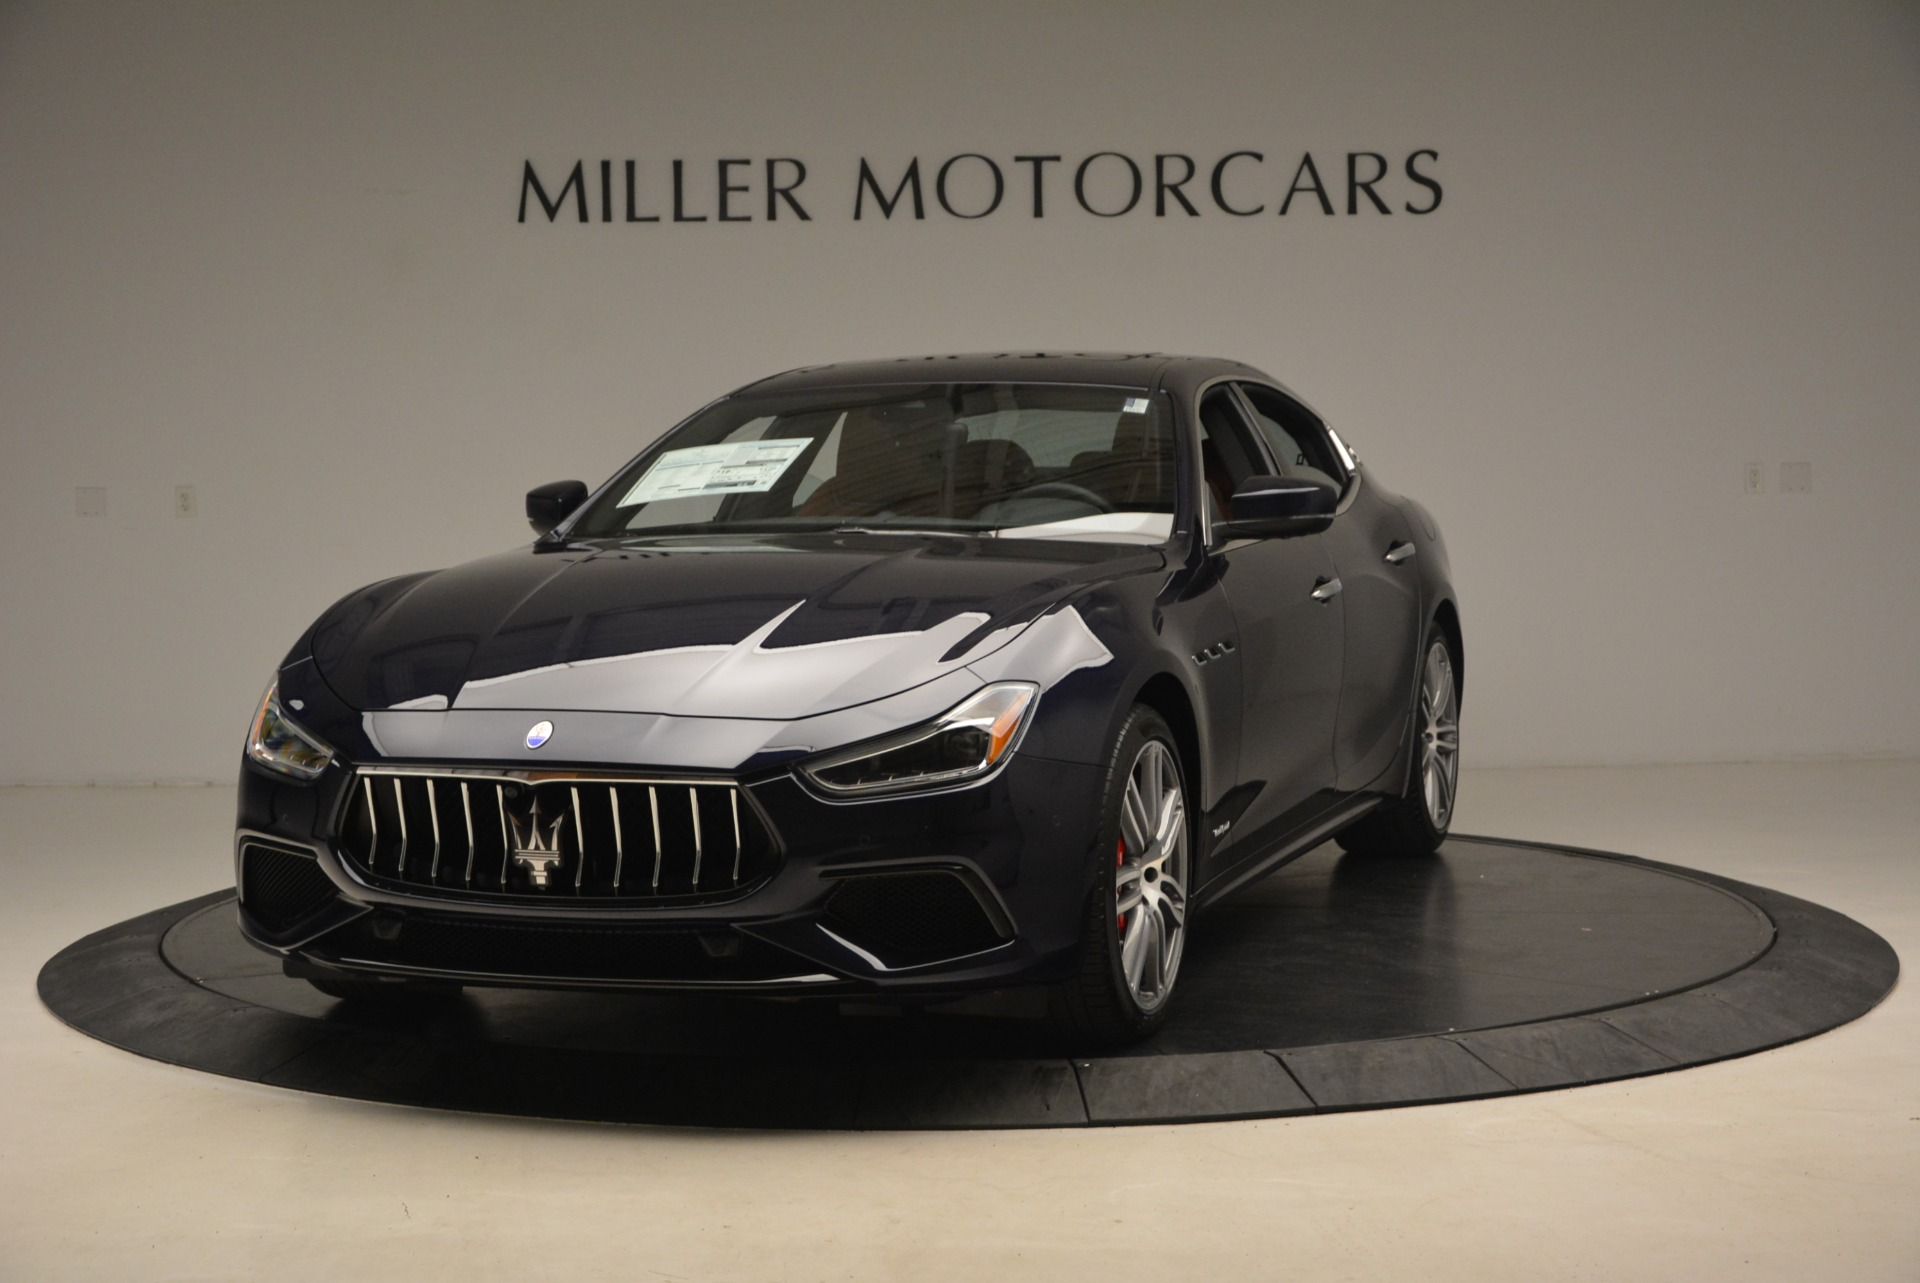 New 2018 Maserati Ghibli S Q4 GranSport for sale Sold at Aston Martin of Greenwich in Greenwich CT 06830 1